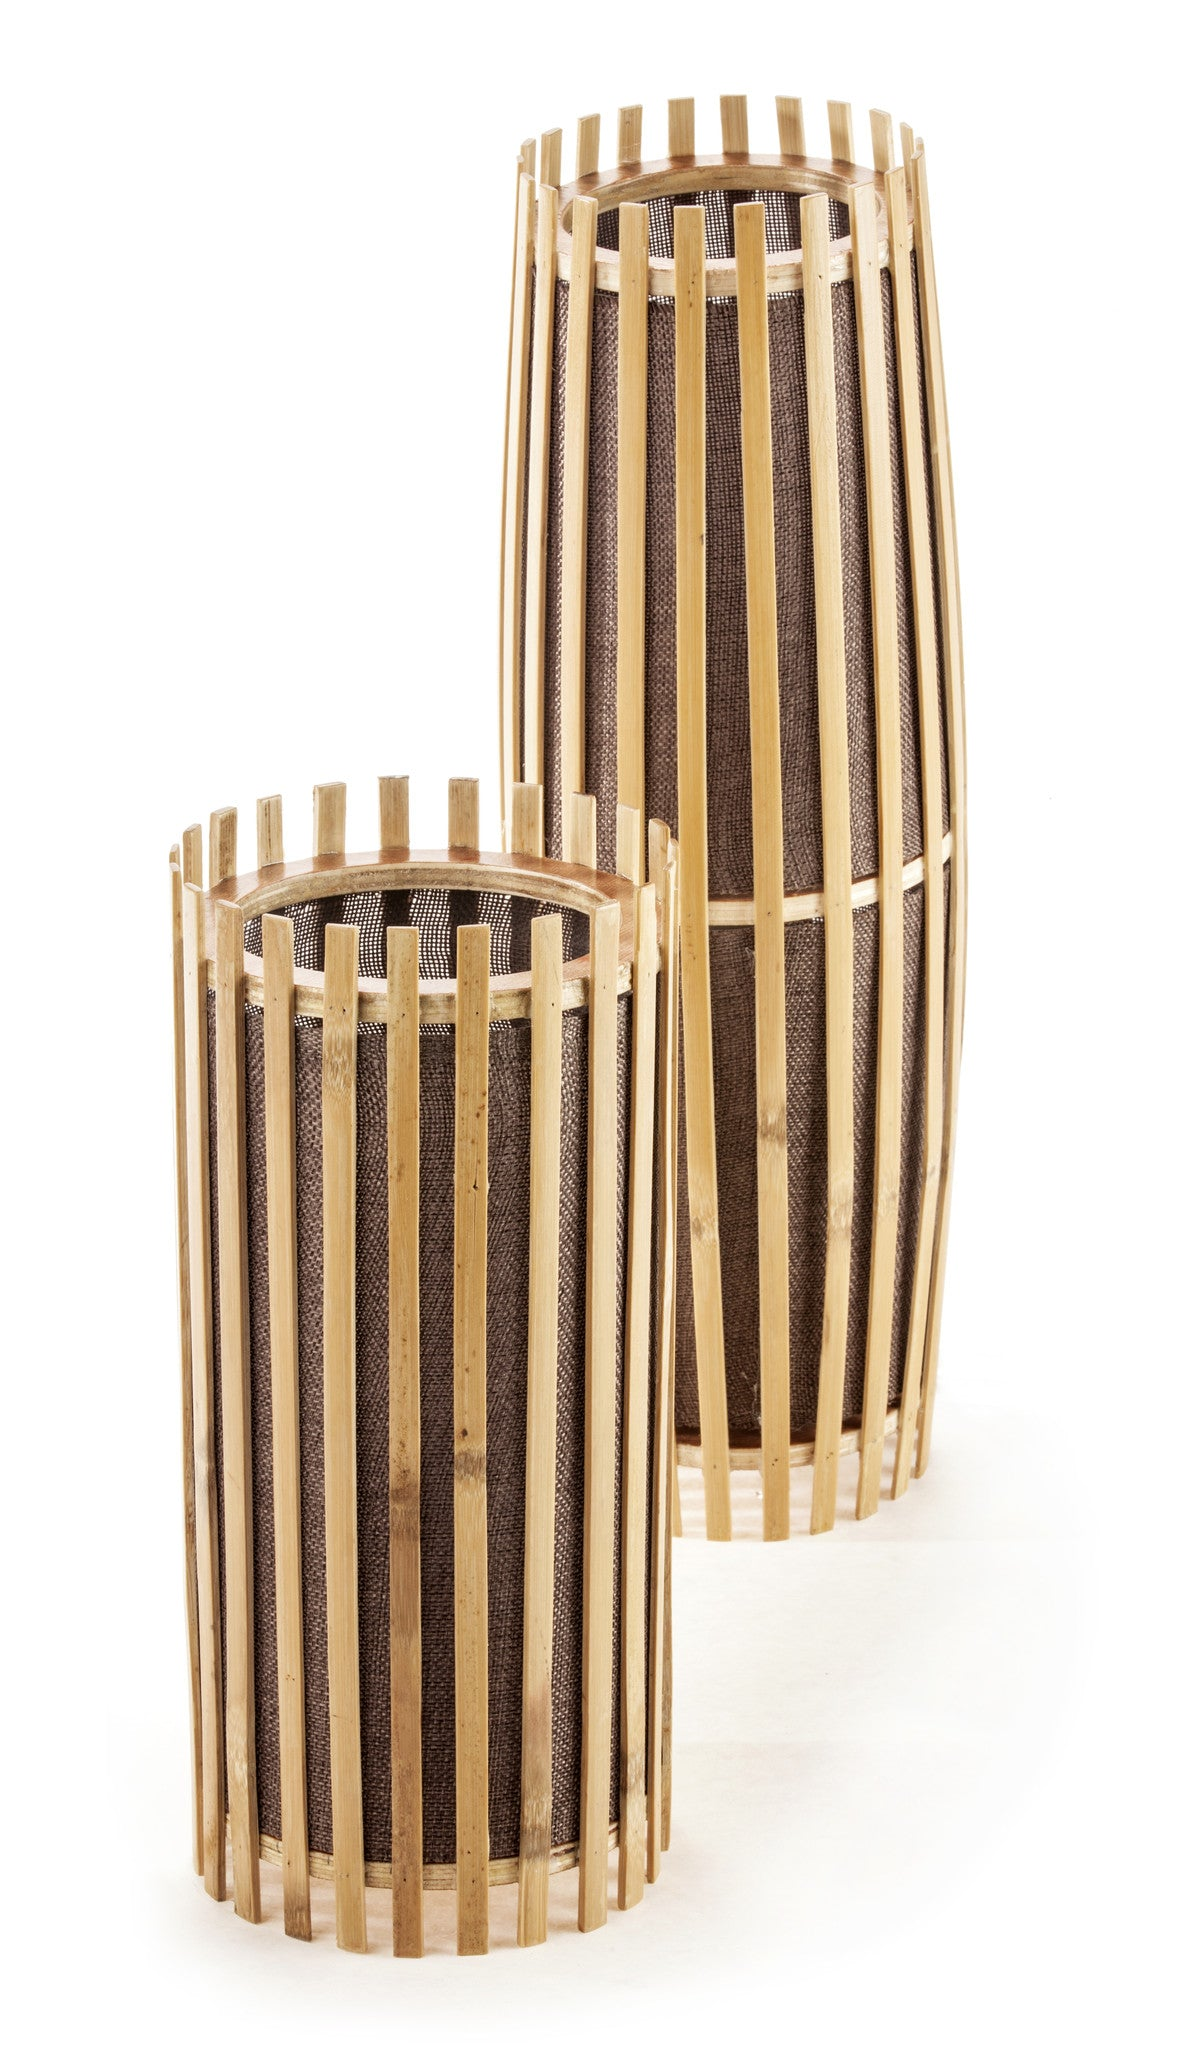 Bamboo table lamp set new haven collection bamboo table lamp set aloadofball Images